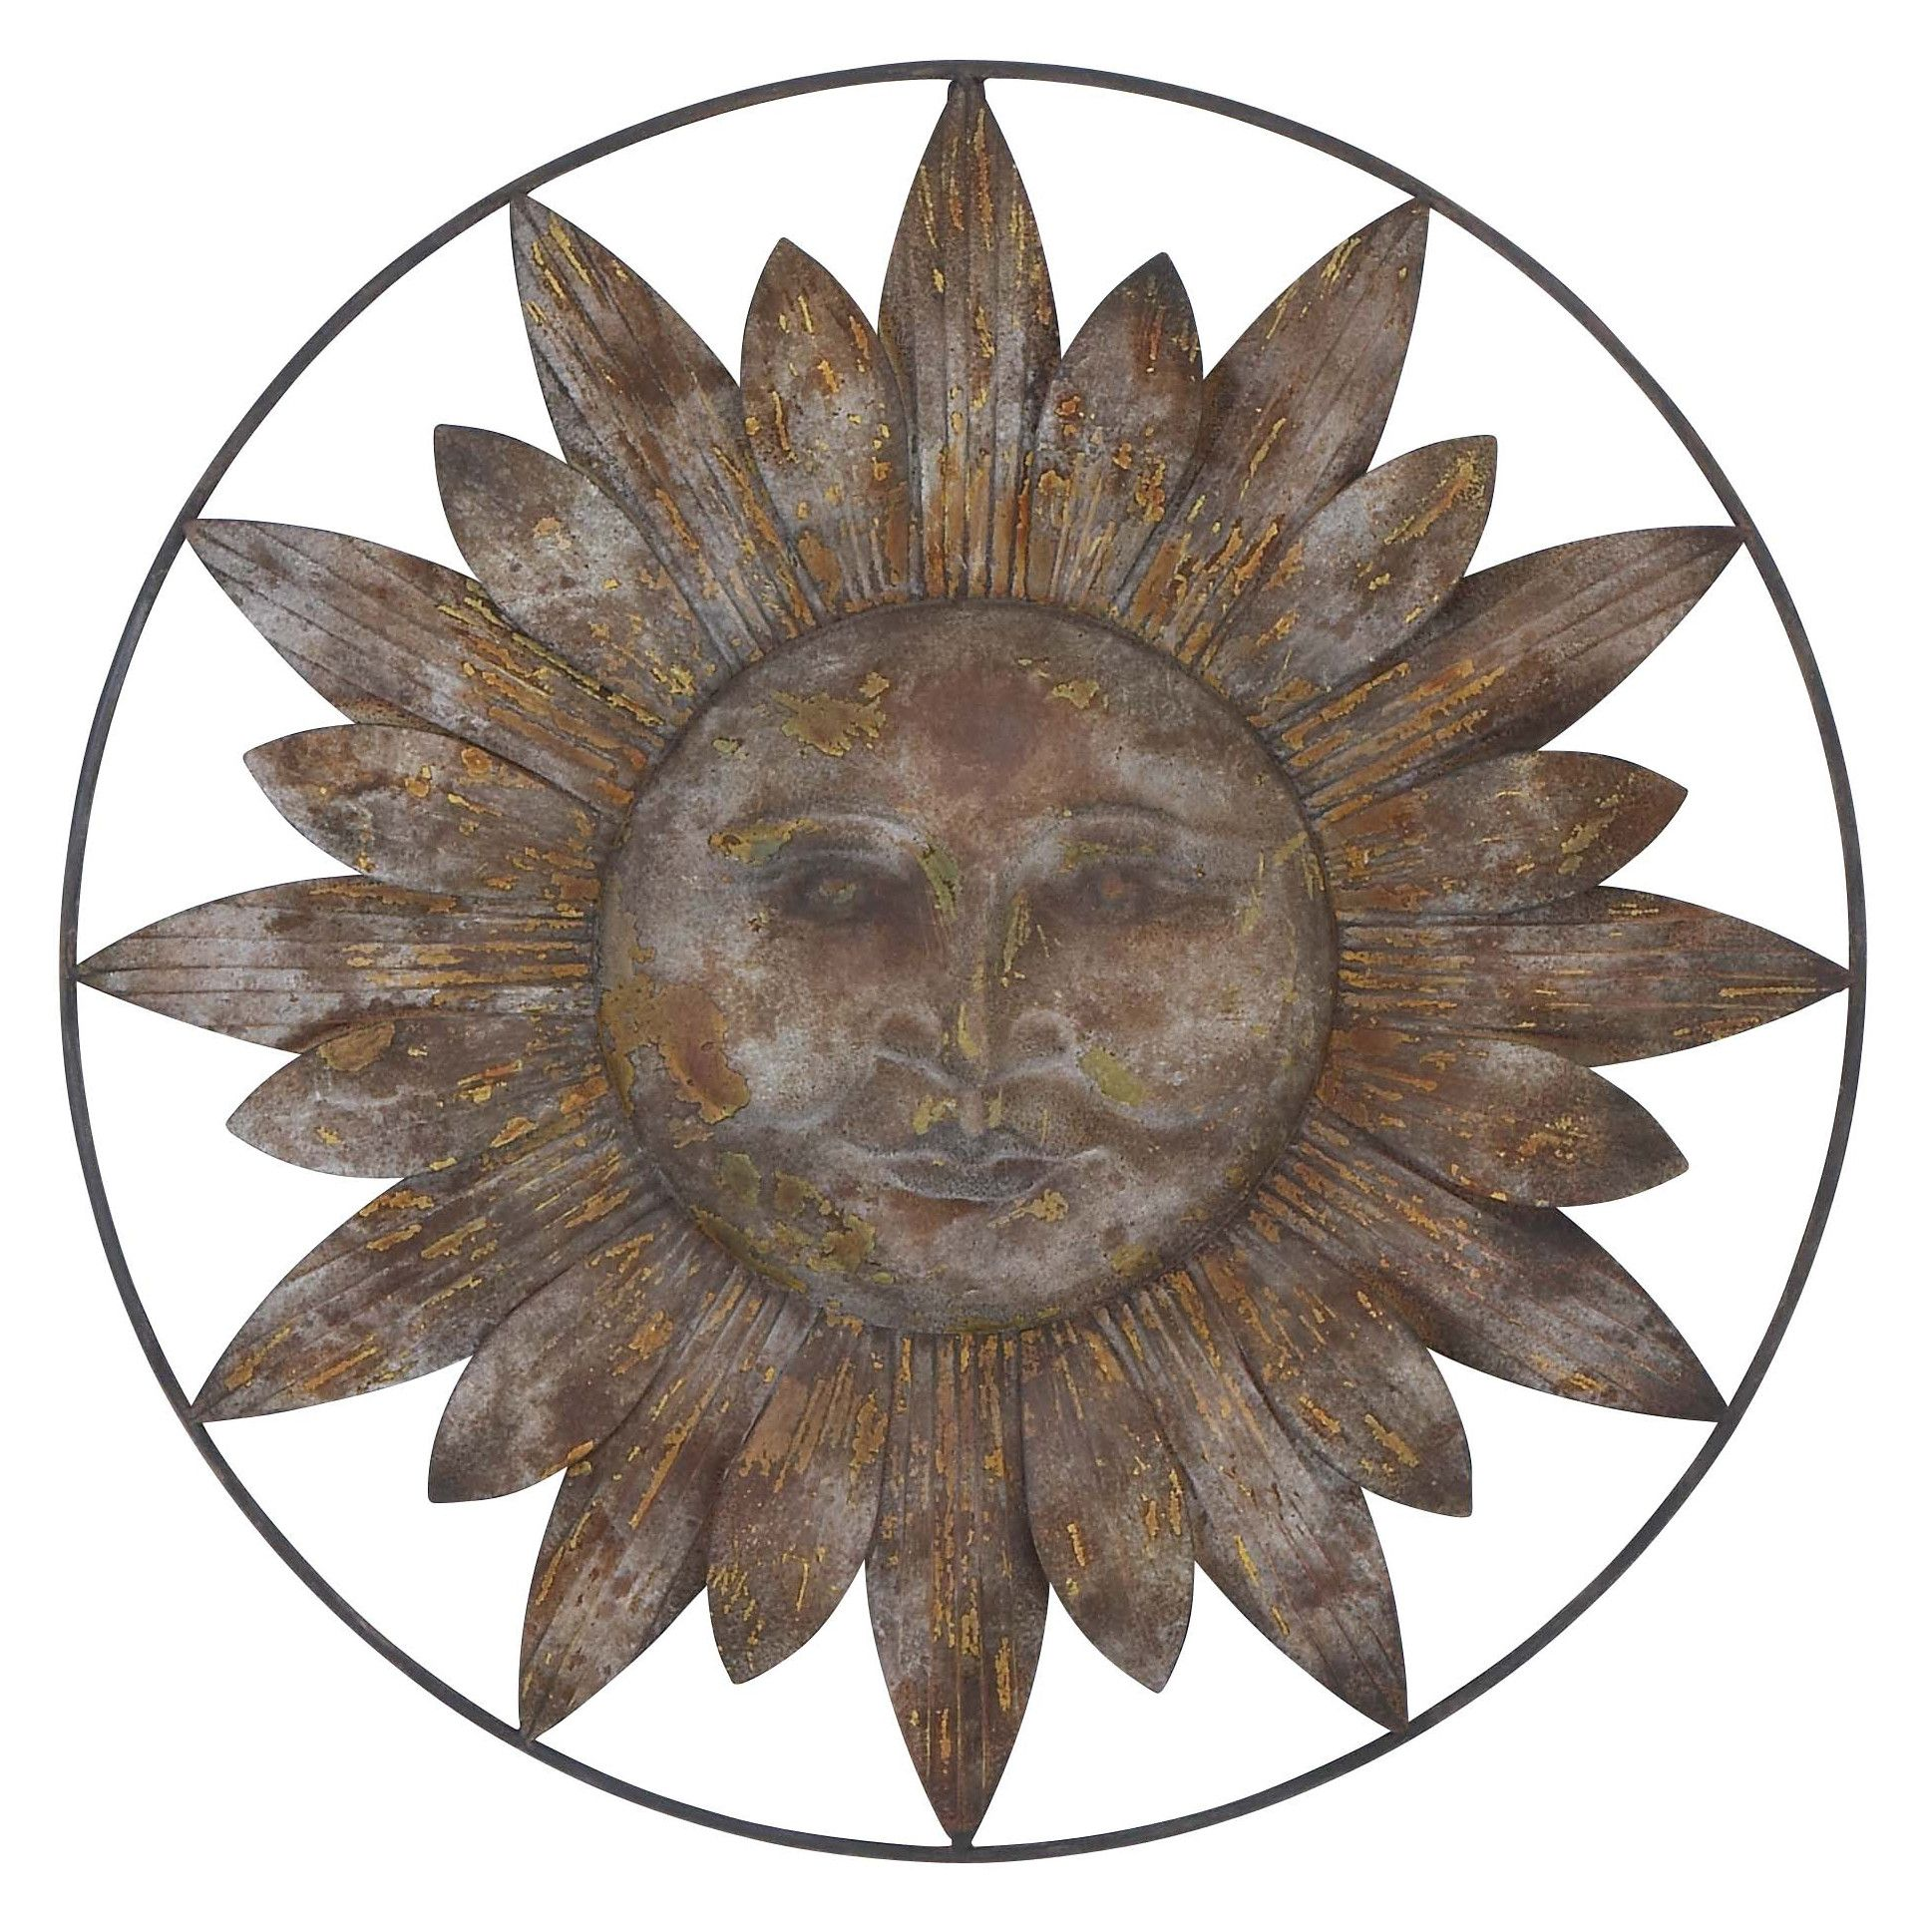 Woodland imports metal sun wall decor also would look sweet in my house rh pinterest